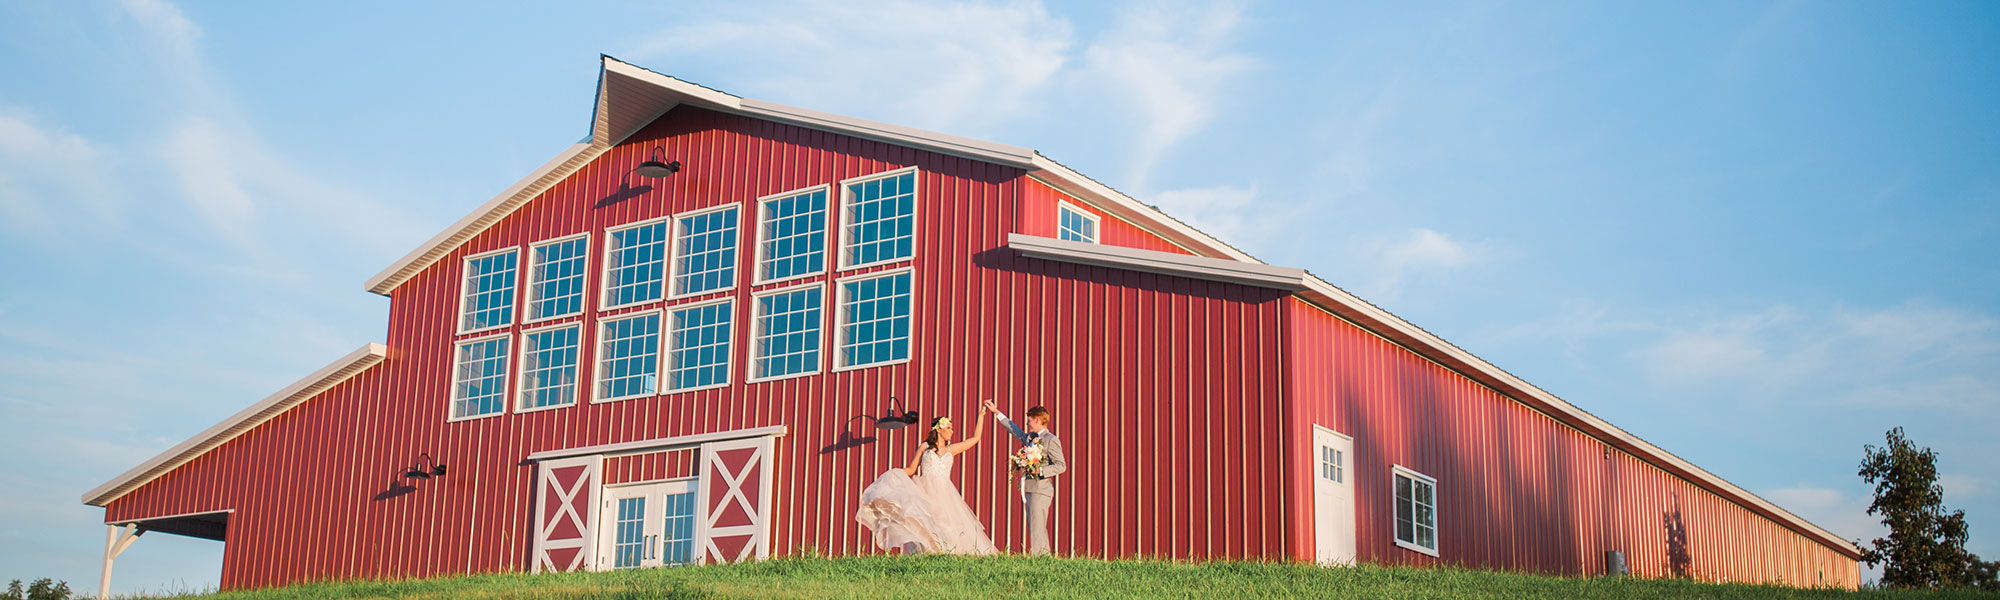 Iowa wedding barn